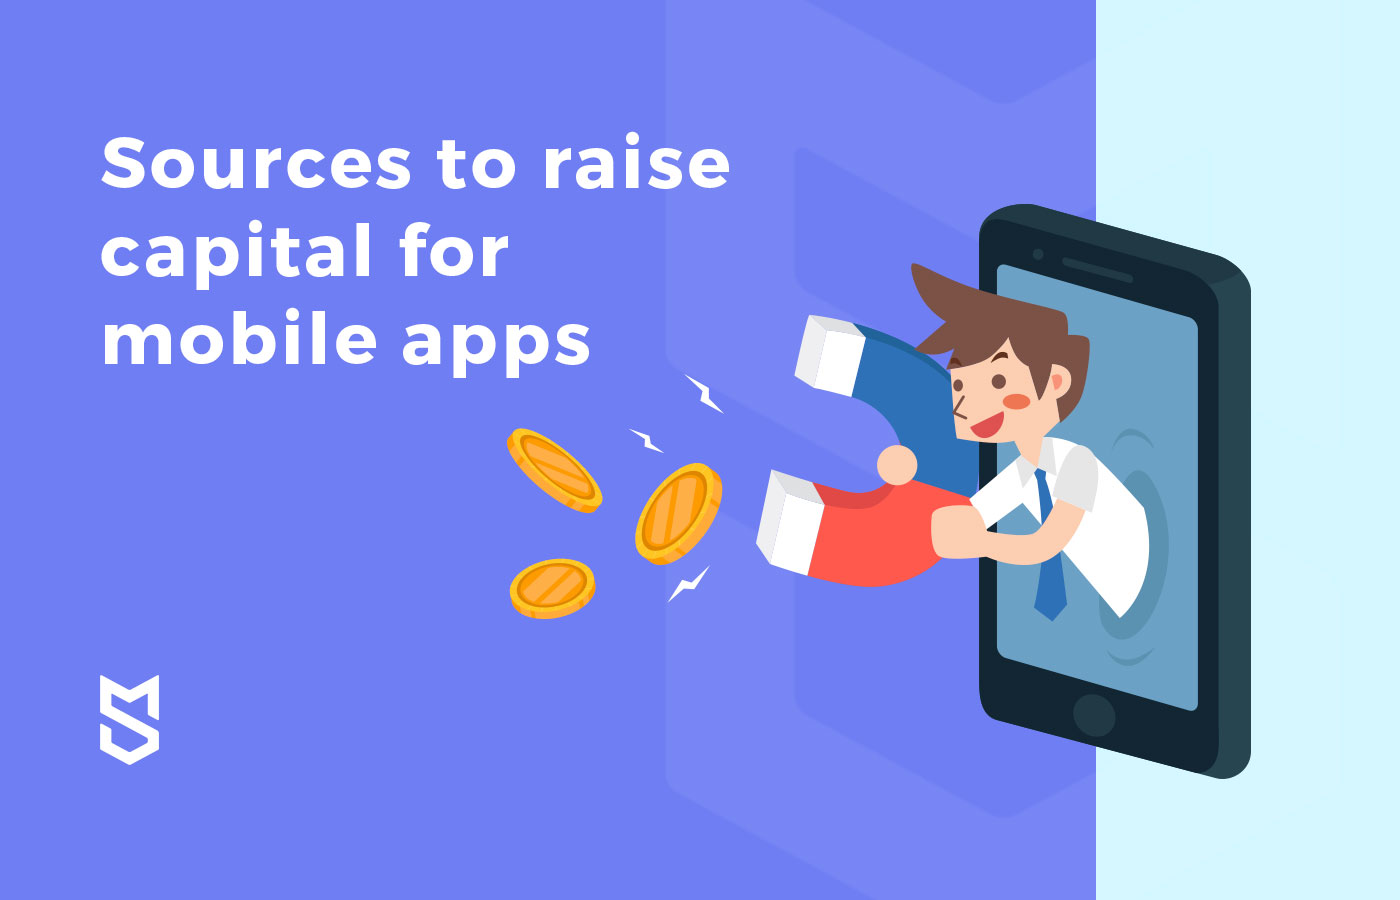 Sources to raise capital for mobile apps